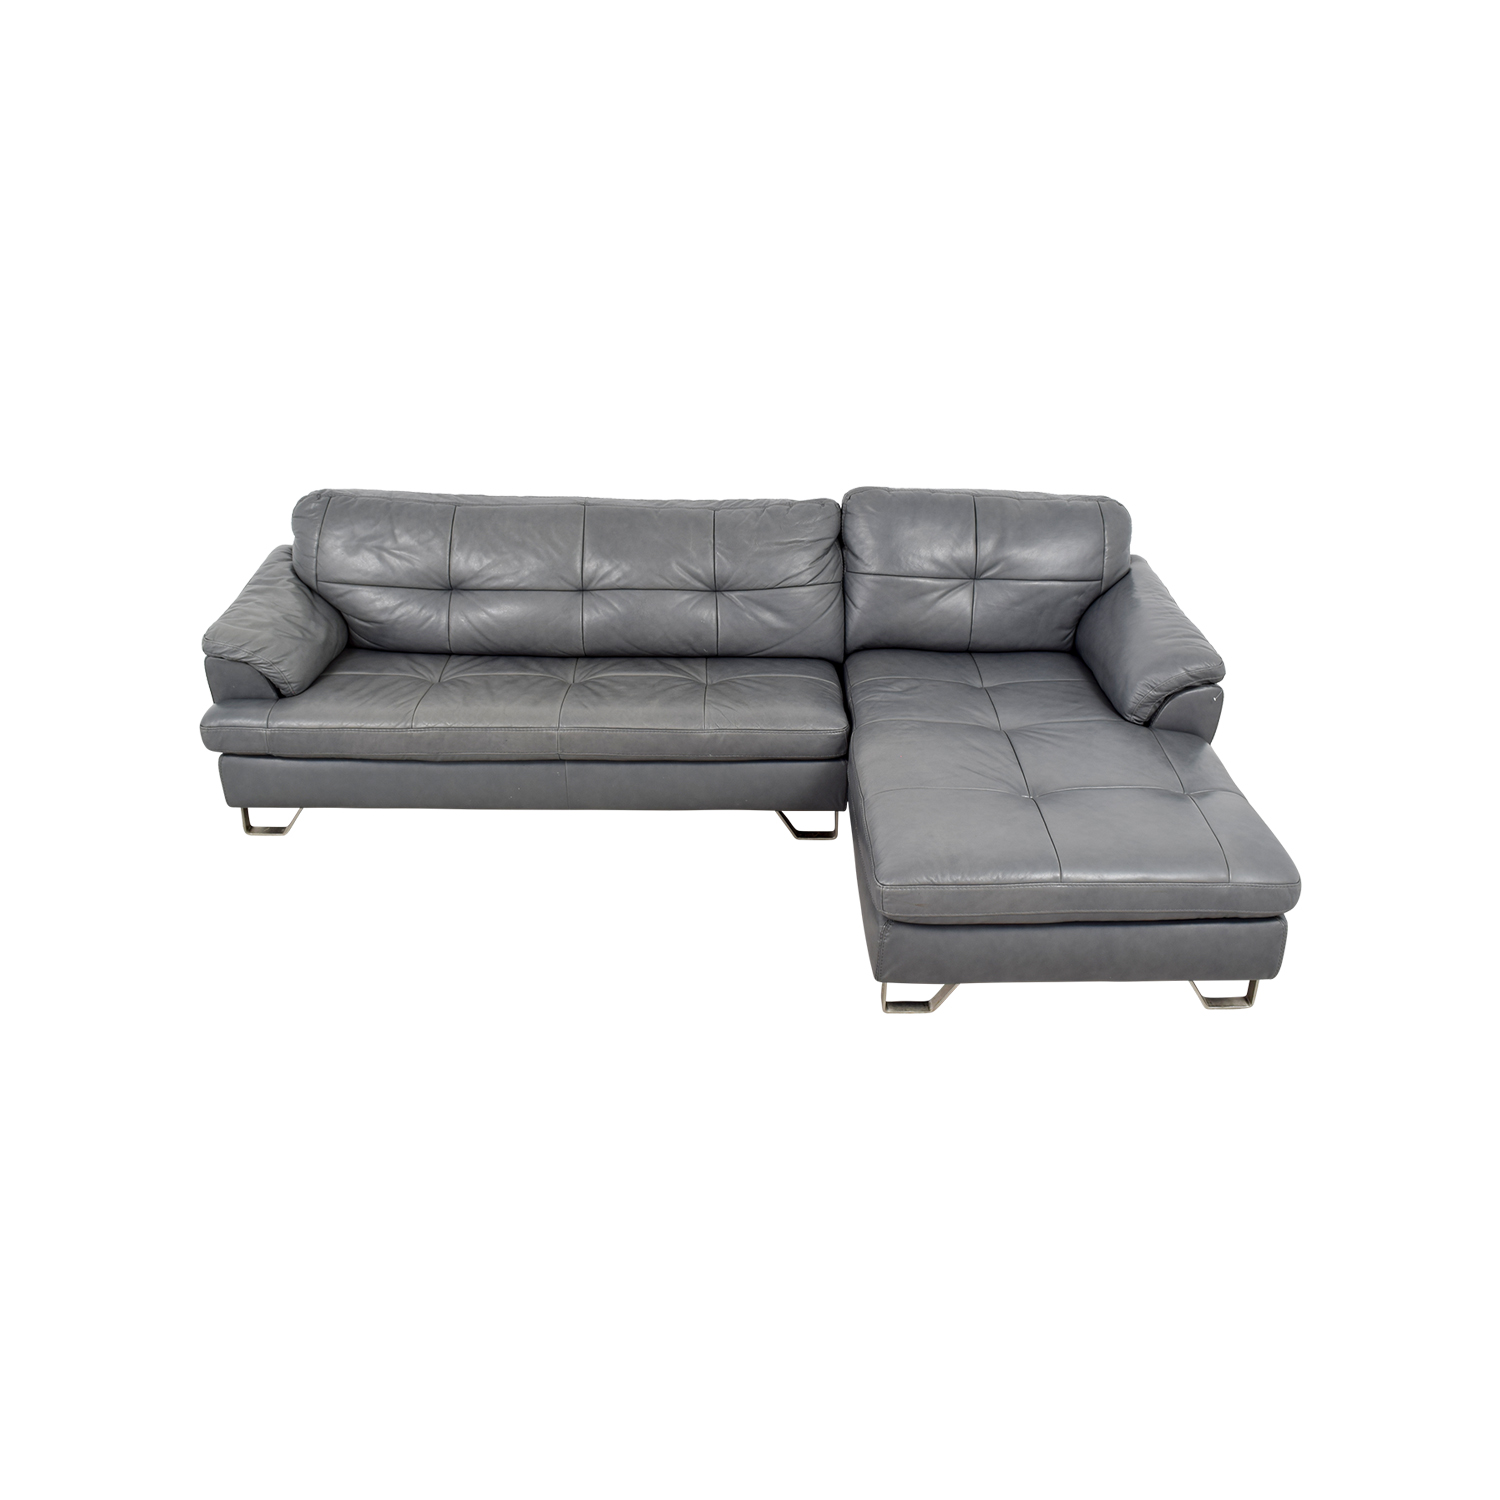 tufted sectionals sofas corner wedge sectional sofa 83 off ashley furniture gray